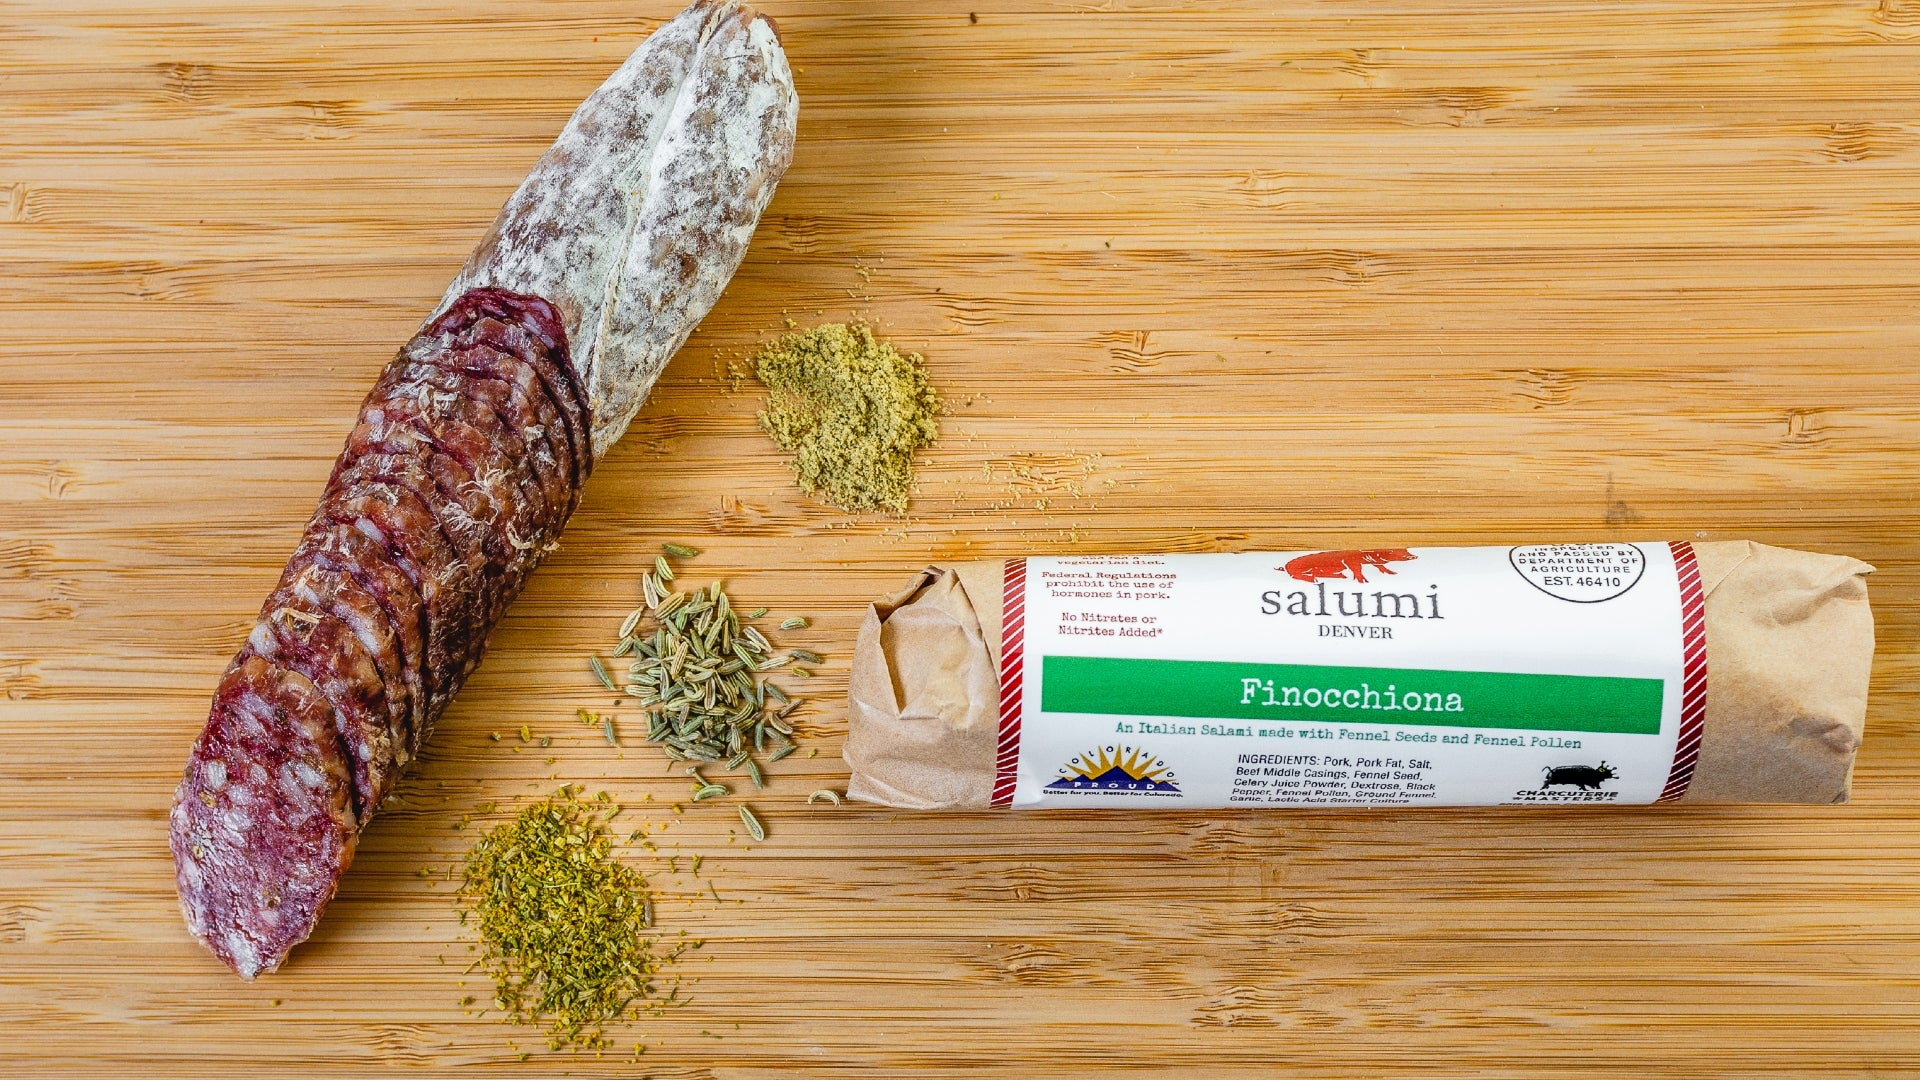 A picture shot from above of Finocchiona salami on a cutting board. One chub of the salami is in it's packaging and the other is cut into slices next to herbs and spices.